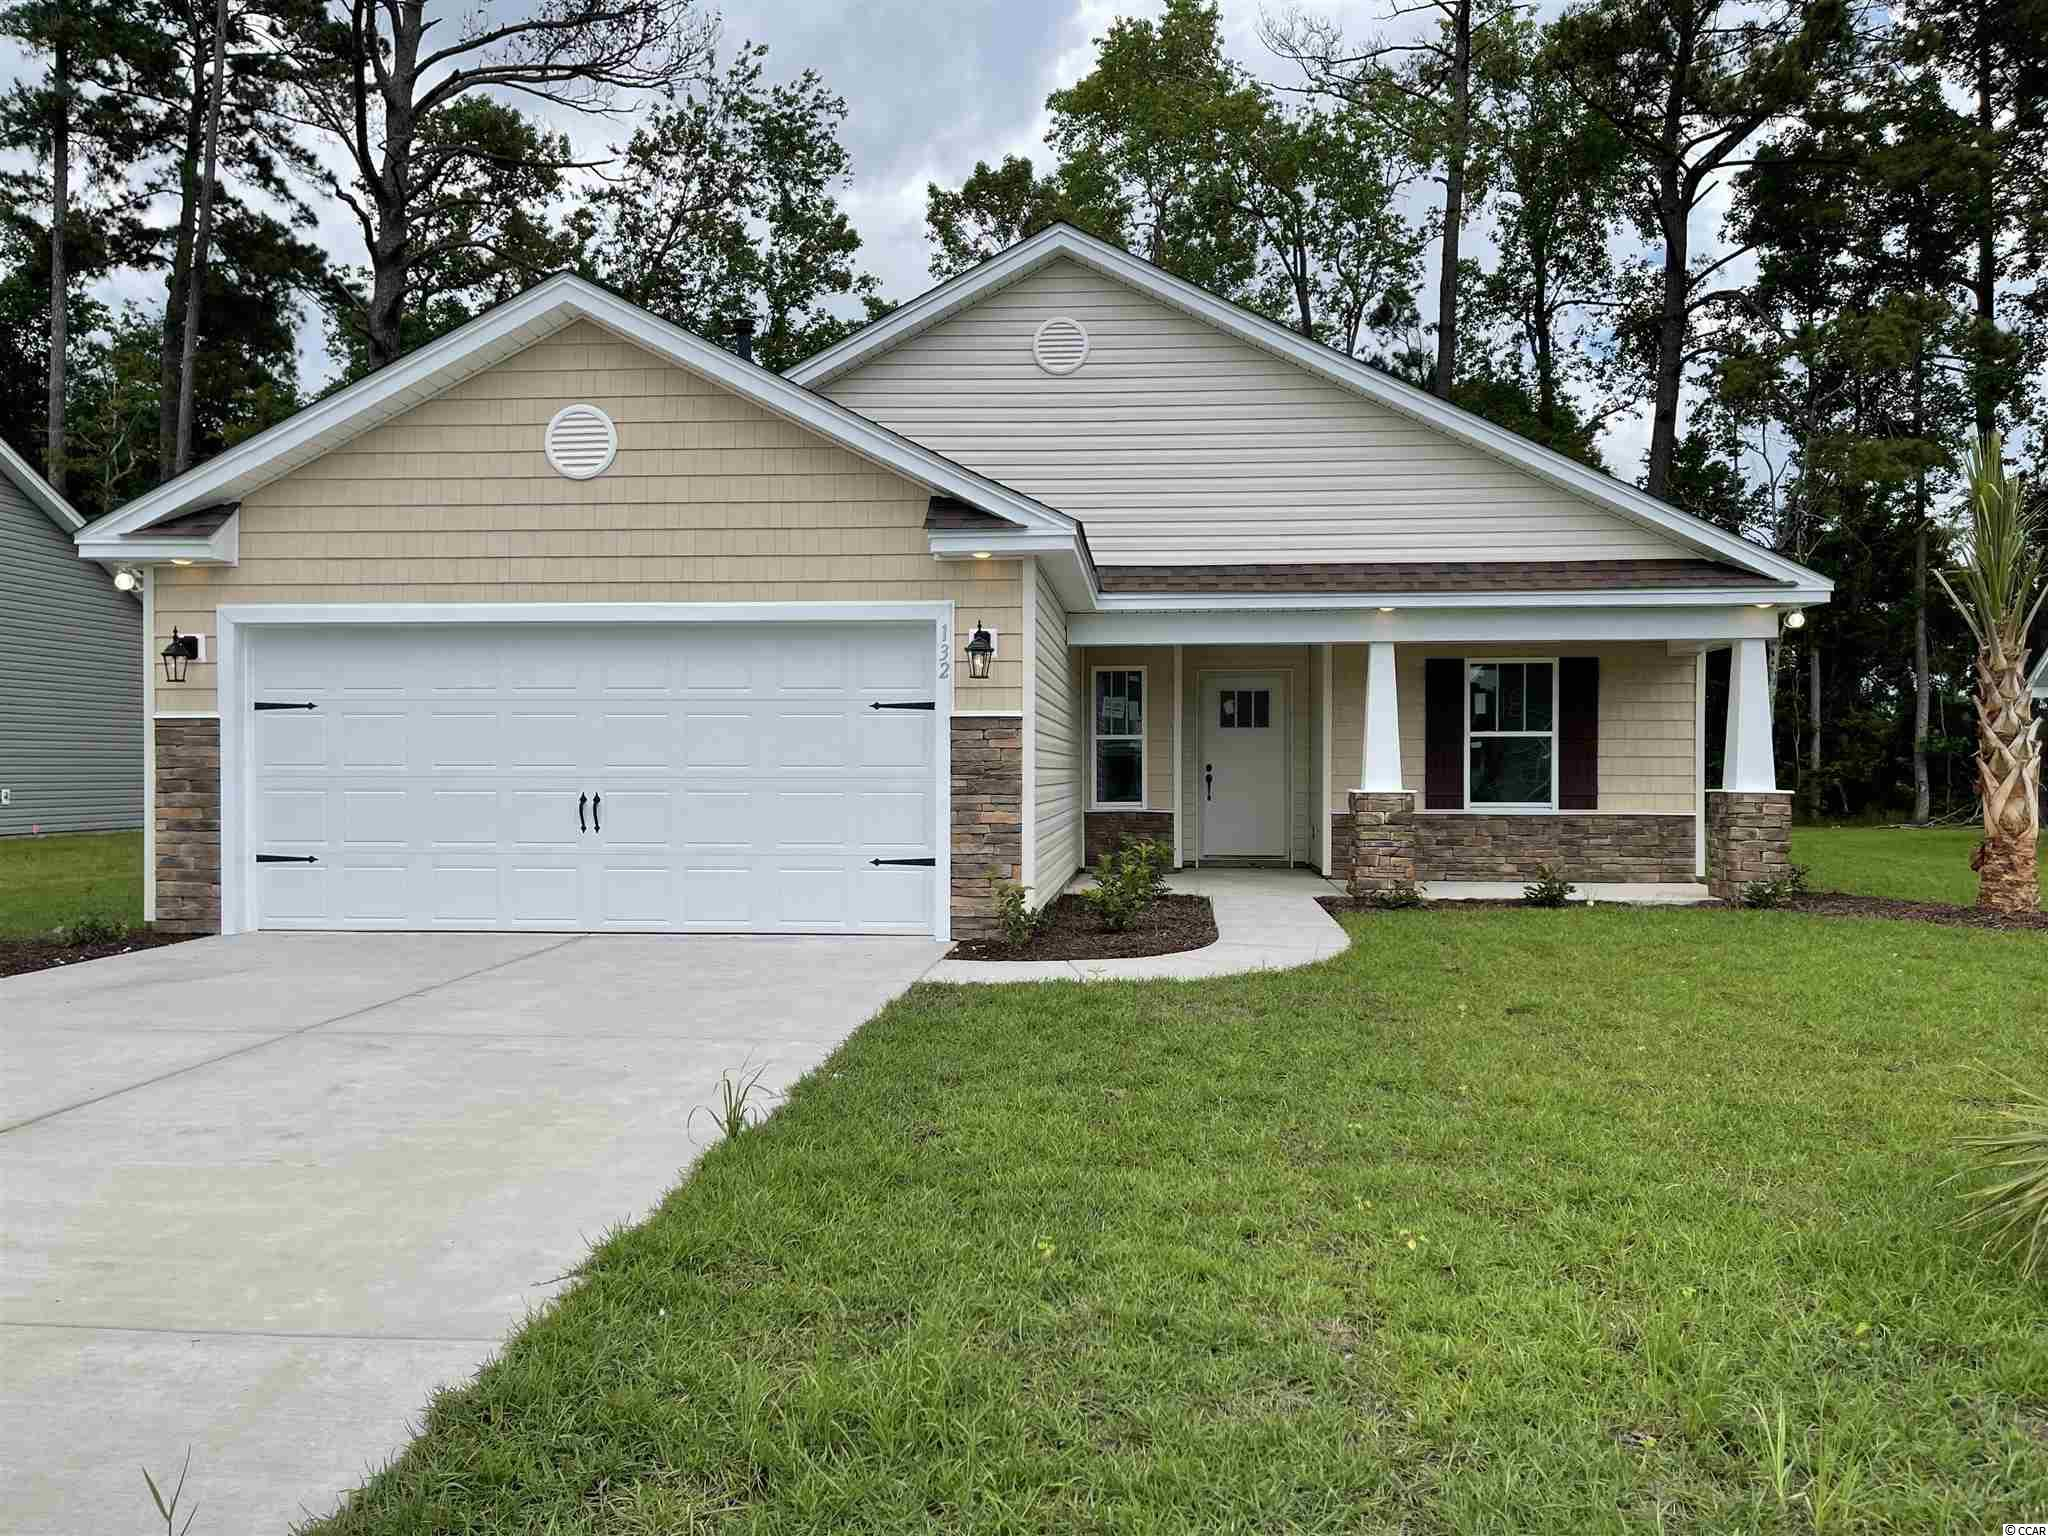 "Natural Gas quiet community located in Little River/North Myrtle Beach only a few miles from the Beach and major shopping! This is the Ruby floor plan with added 4th bedroom/Bonus room and a bathroom above garage built on a 0.20 ac home site. This home includes finished 2 car garage, a covered rear patio and a covered front porch!! Spacious and open kitchen with lots of counter space, granite countertops, White shaker kitchen cabinets with crown molding and hardware included. 5 ft cultured marble shower and a garden tub in Master bathroom, large walk in master closet. Ceramic tile in all bathrooms and Laundry room, LVP flooring in Family Room, Foyer, Hall, Dining. Vaulted ceiling in Family room and every bedroom. Wainscot and 5 1/2 "" beaded baseboards for Custom look!! Home also includes TAEXX pest control tubing, lawn irrigation and Ring video doorbell!!!Stone accents on the exterior as well. All measurements are approximate *Photos of a similar home* Some items on the photos may bean additional cost. Anticipating completion time June 2021"